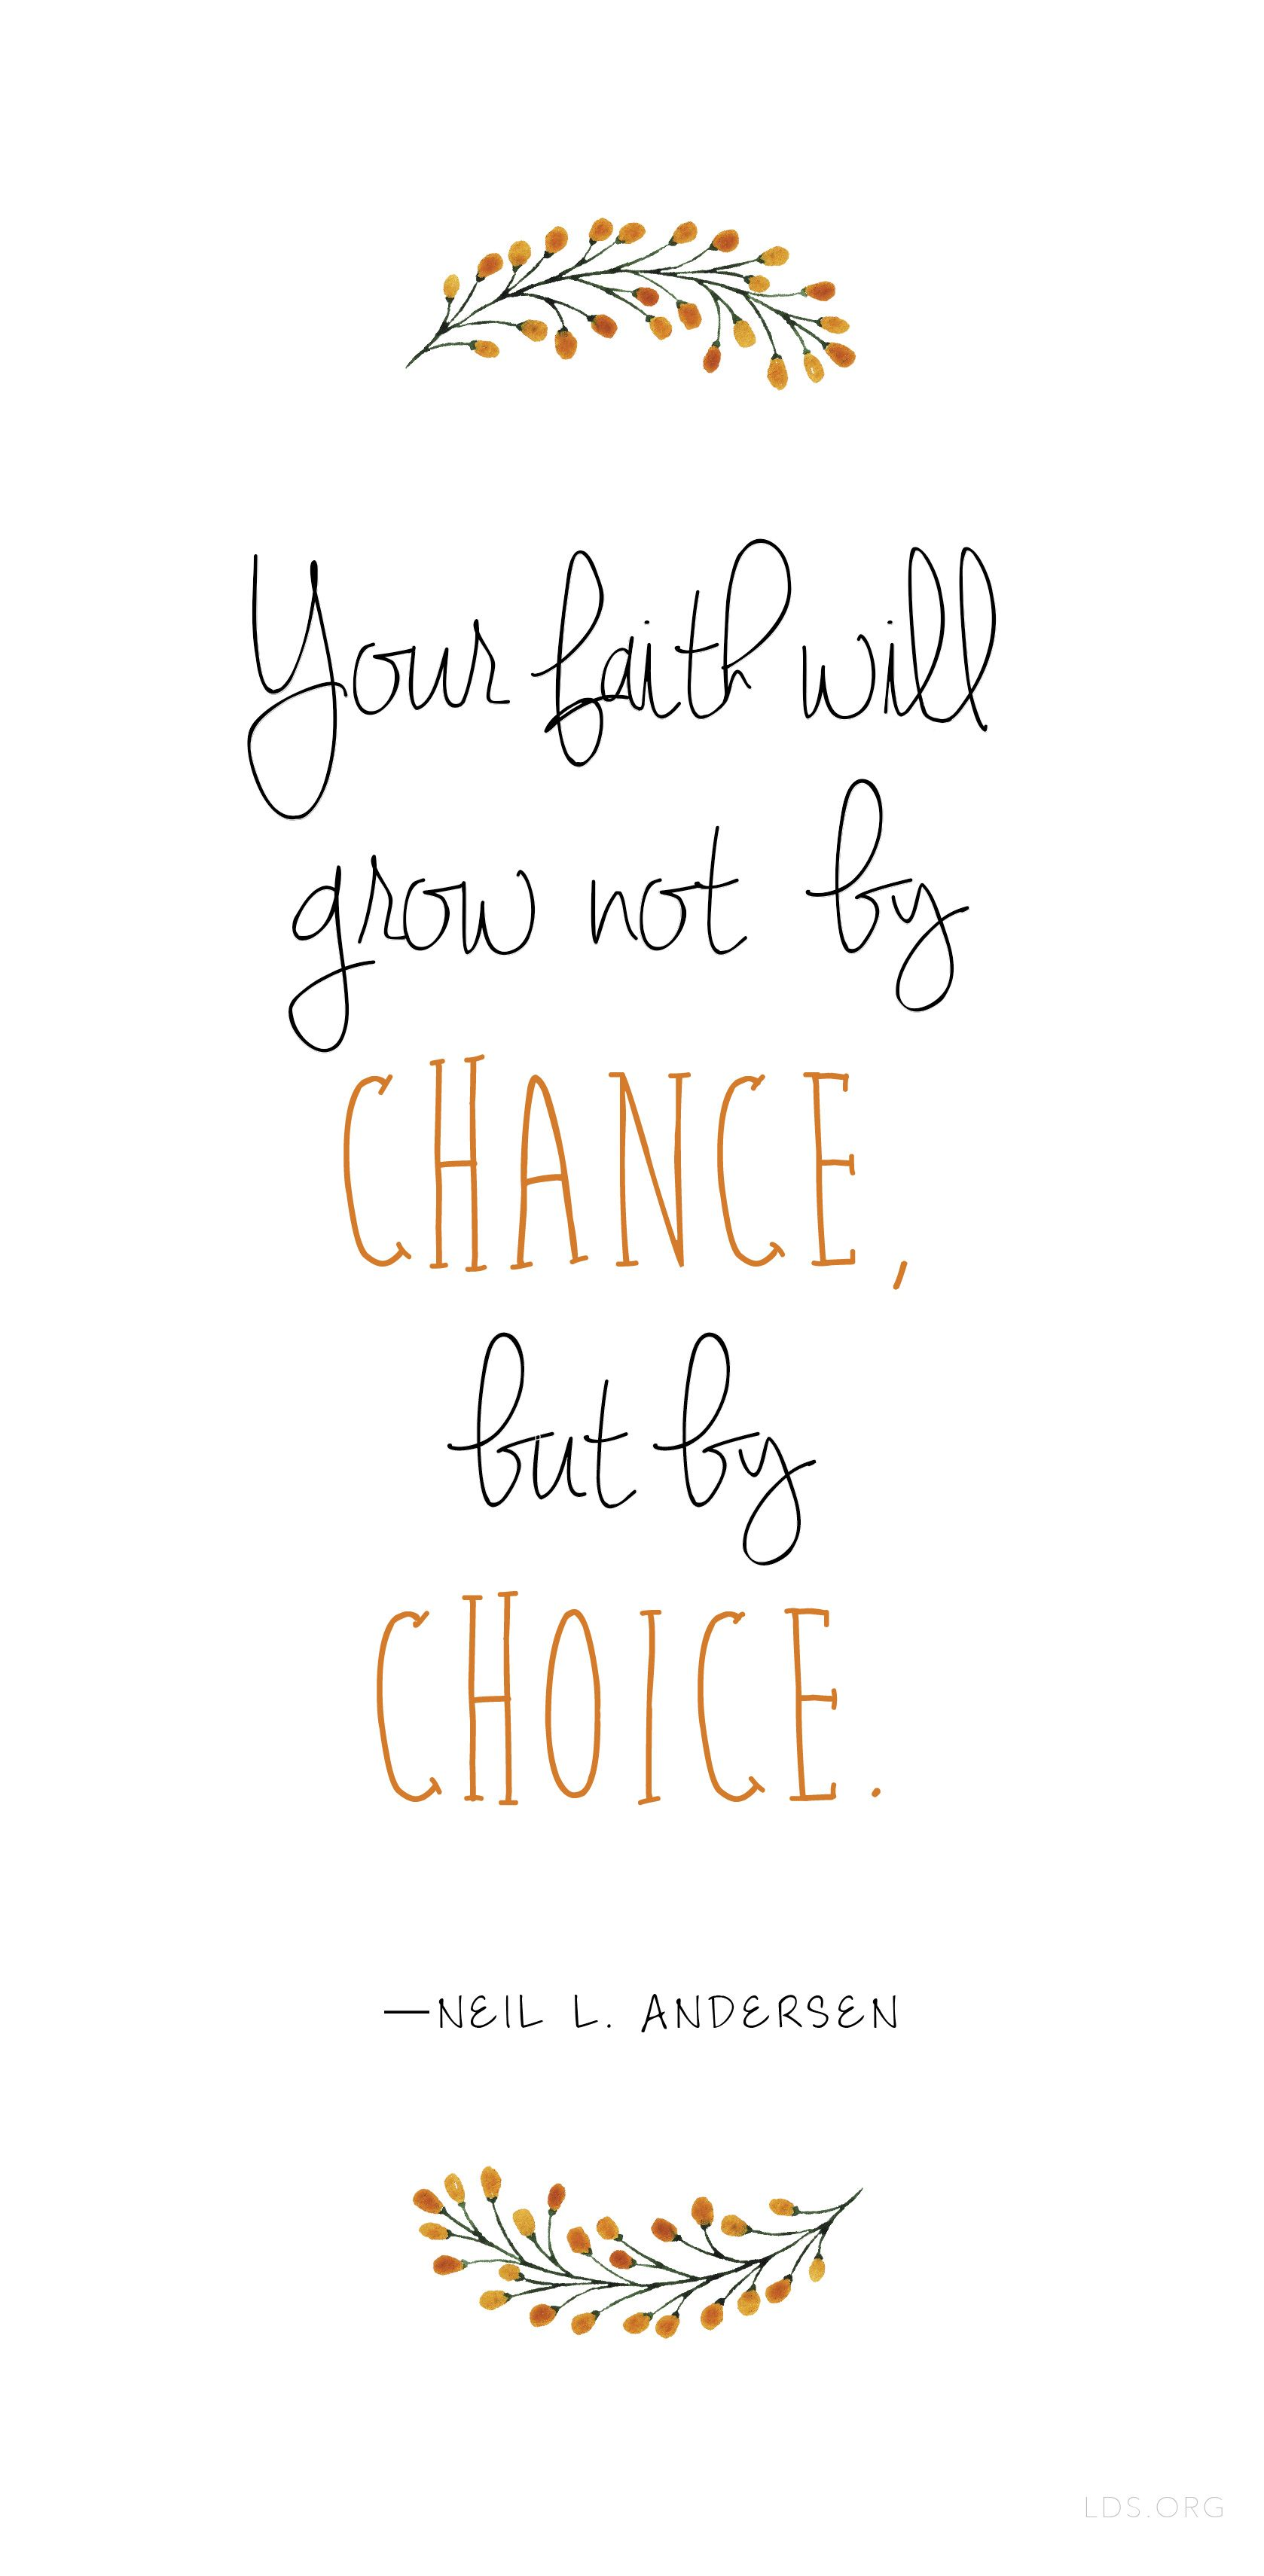 kristne citater Your faith will grow not by chance, but by choice. —Neil L  kristne citater